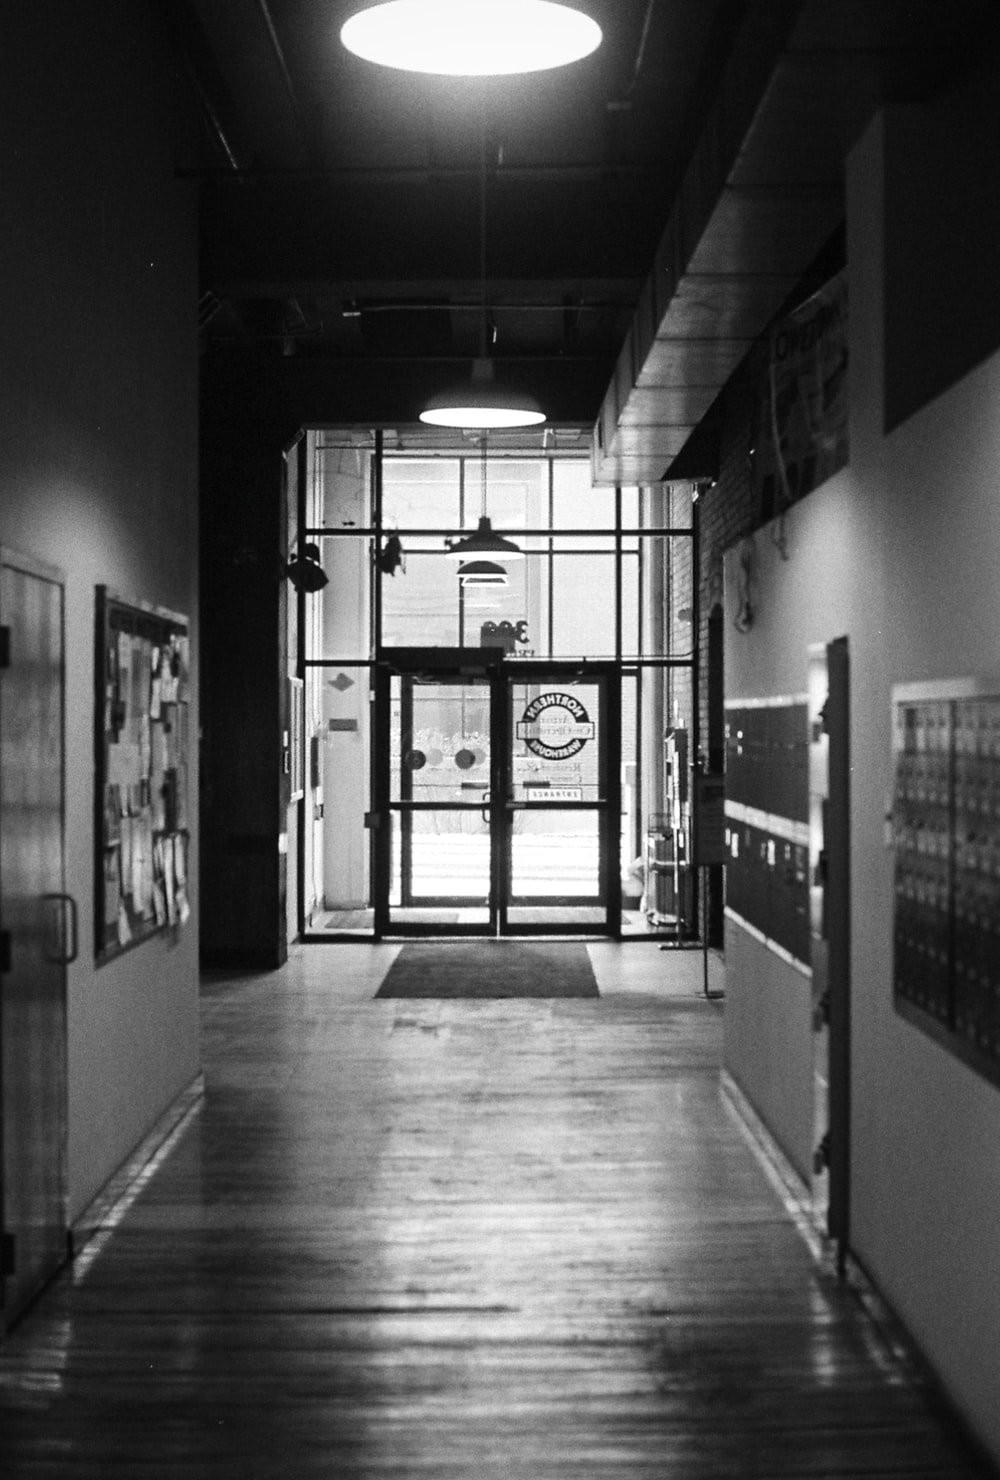 grayscale photography of empty hallway